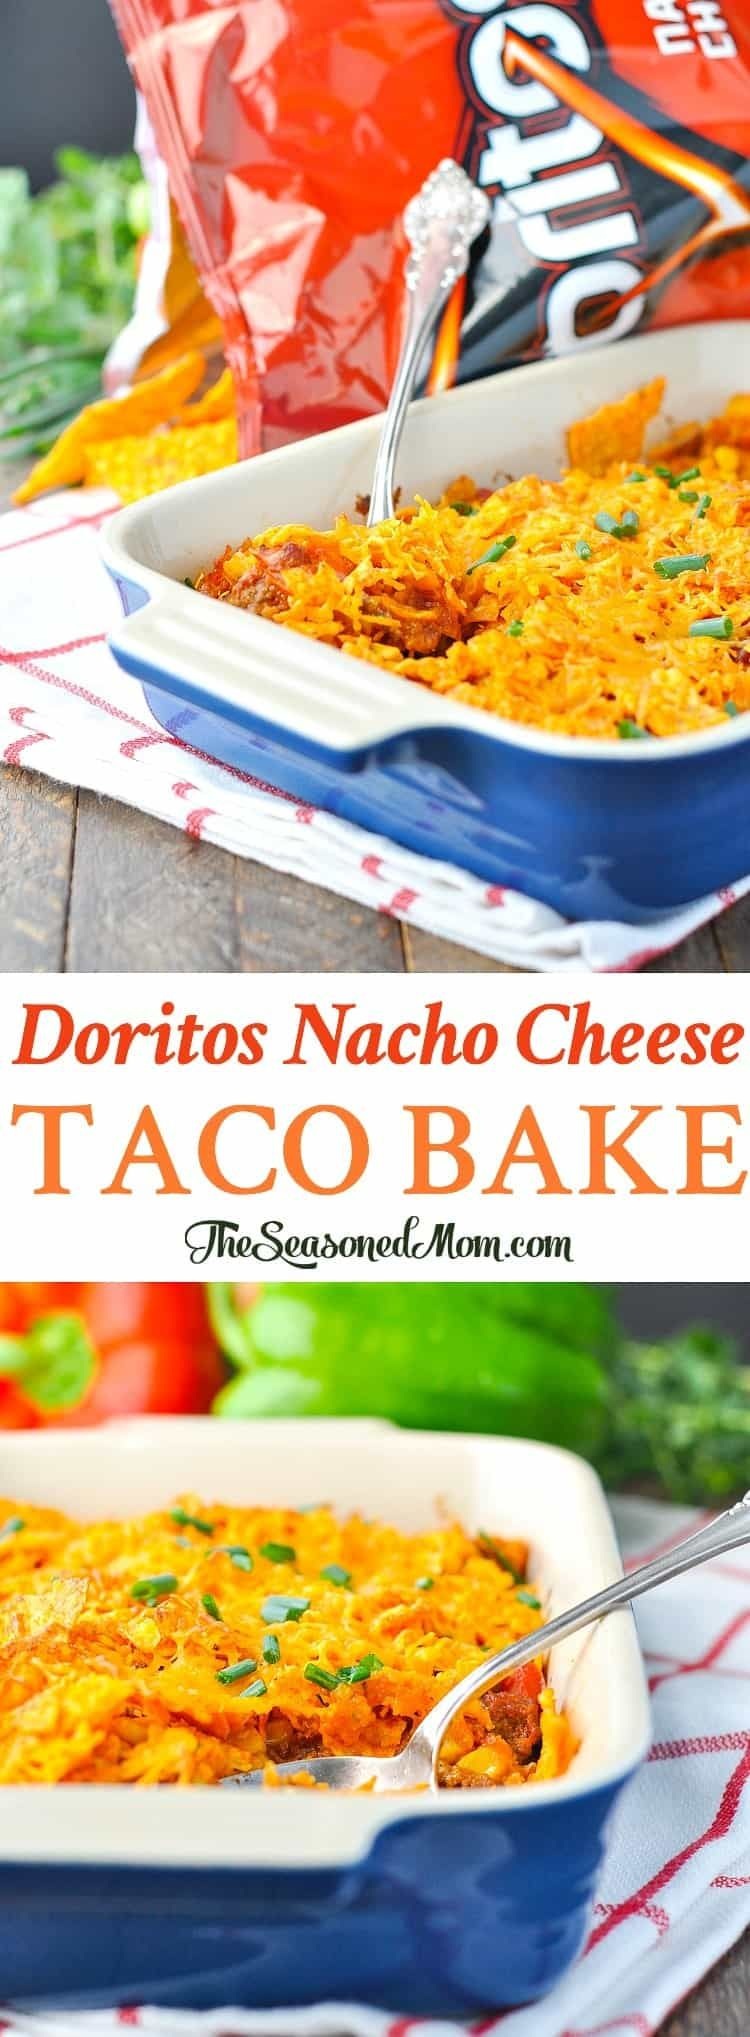 Doritos Nacho Cheese Taco Bake images